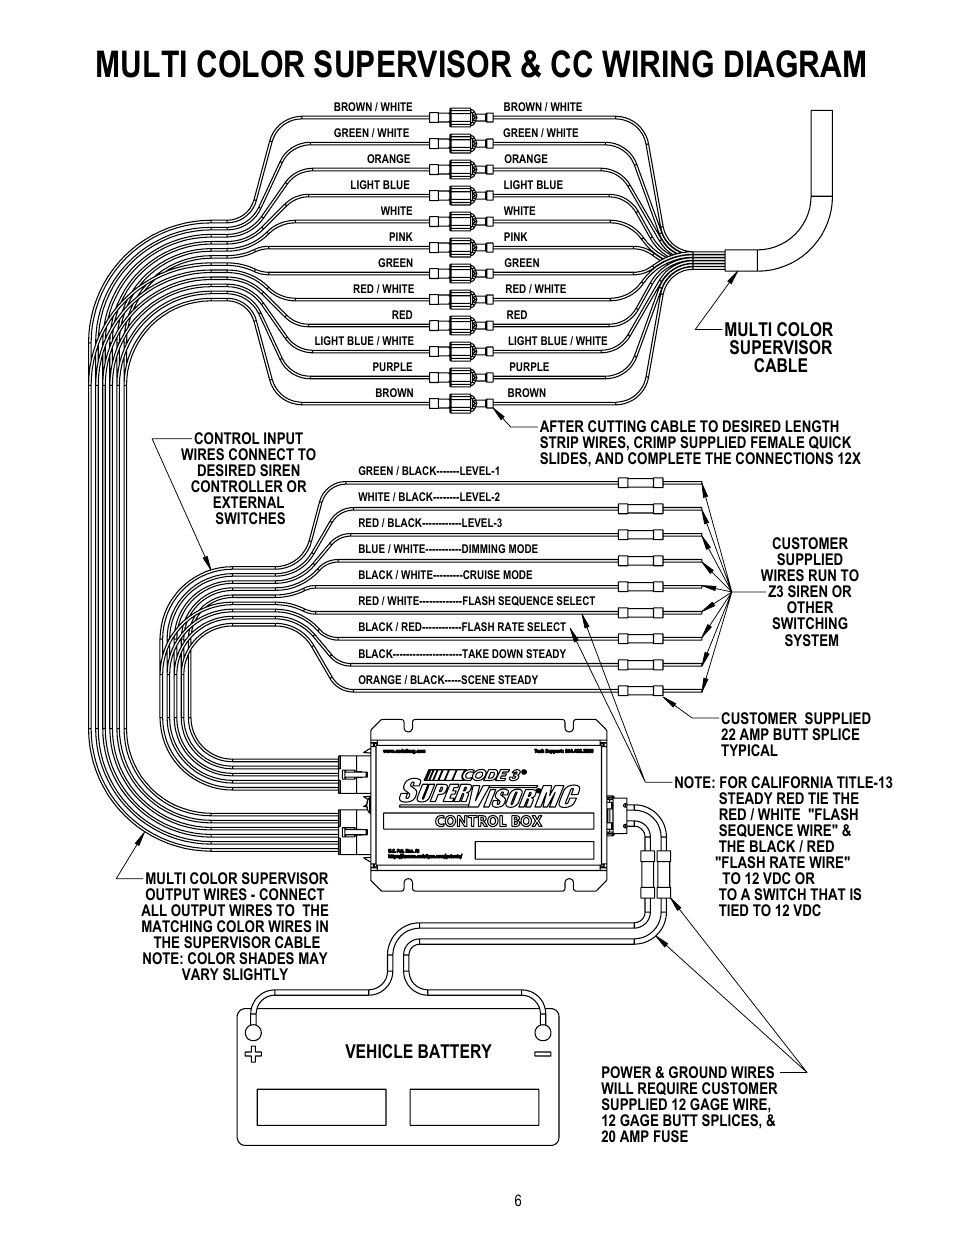 Code Alarm Wiring Diagrams 3 Excalibur Diagram Supervisor Light Bar Centralroots Com Wire Schematic